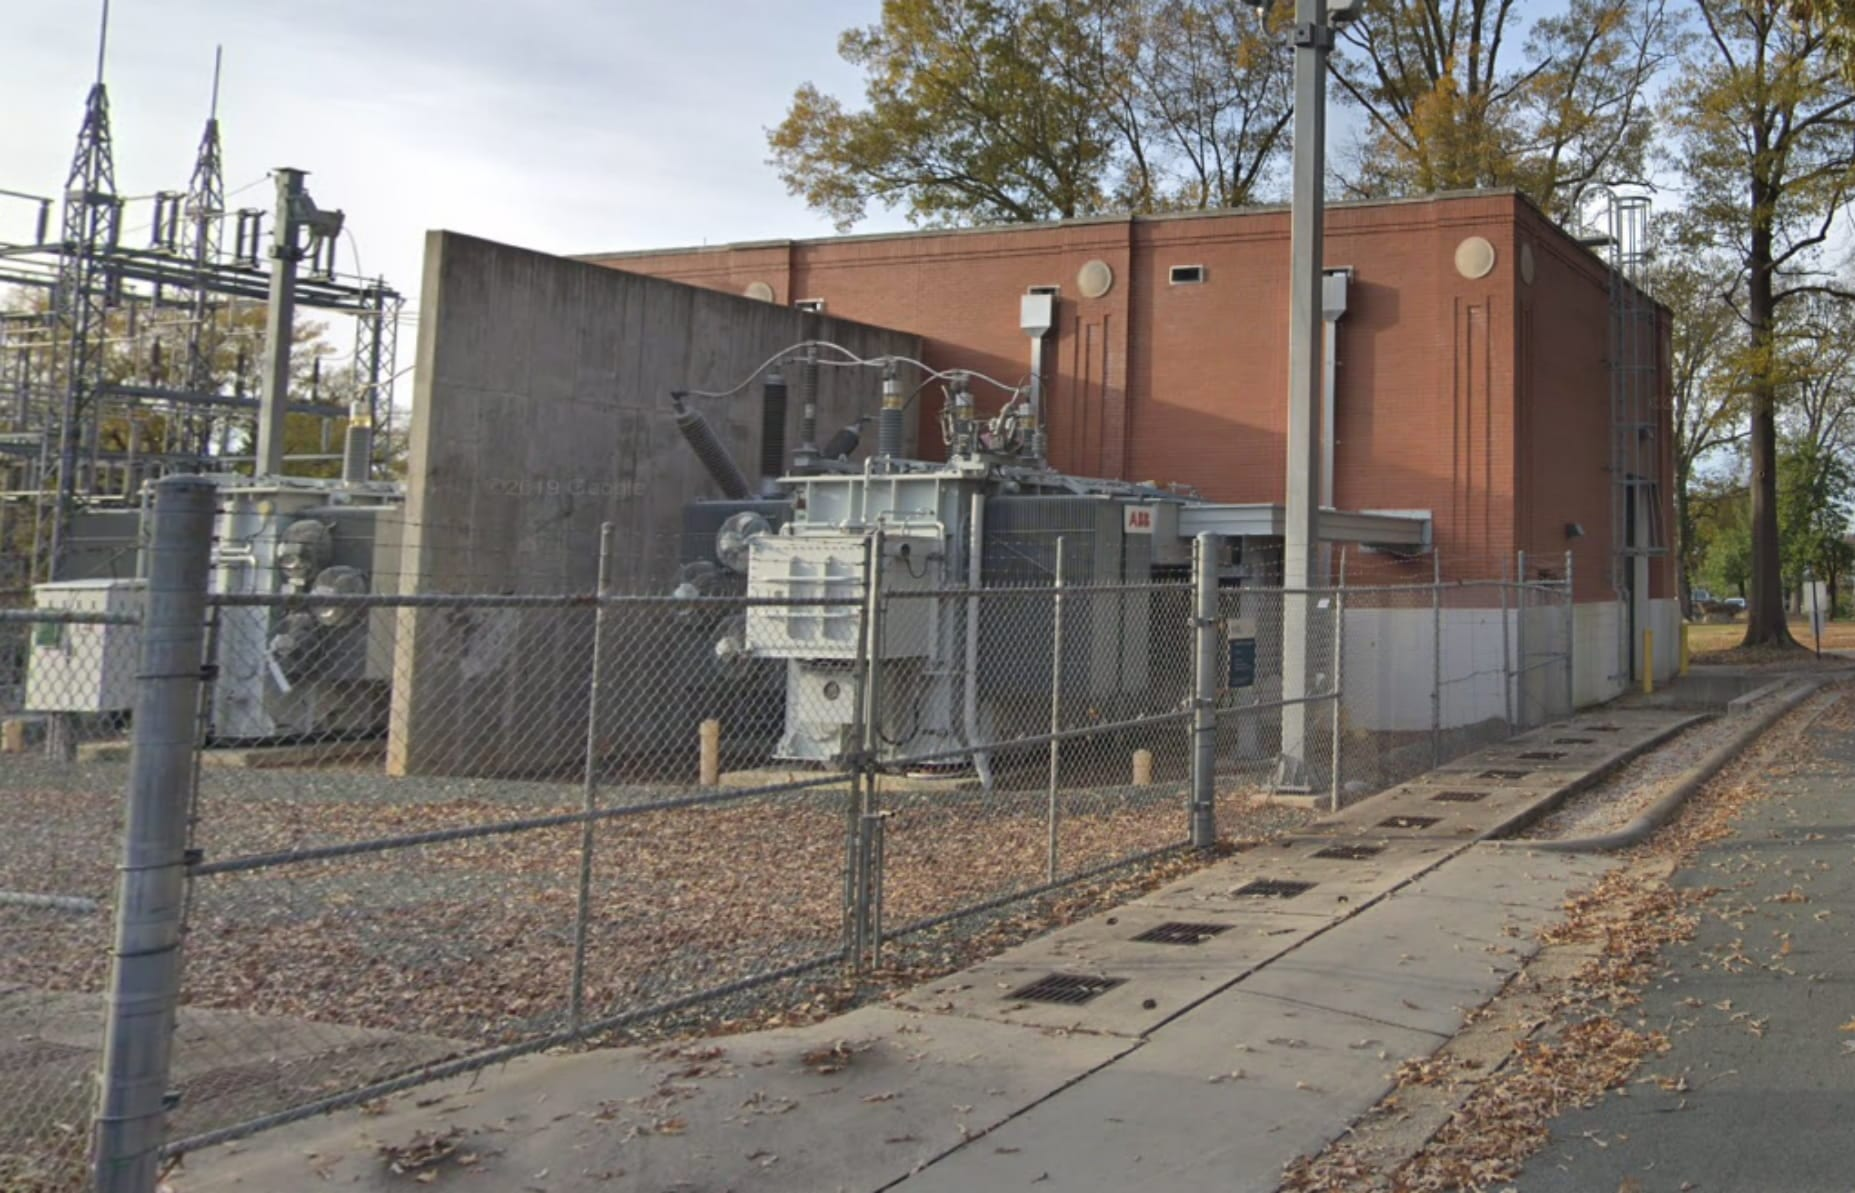 Cameron Substation # 1-1